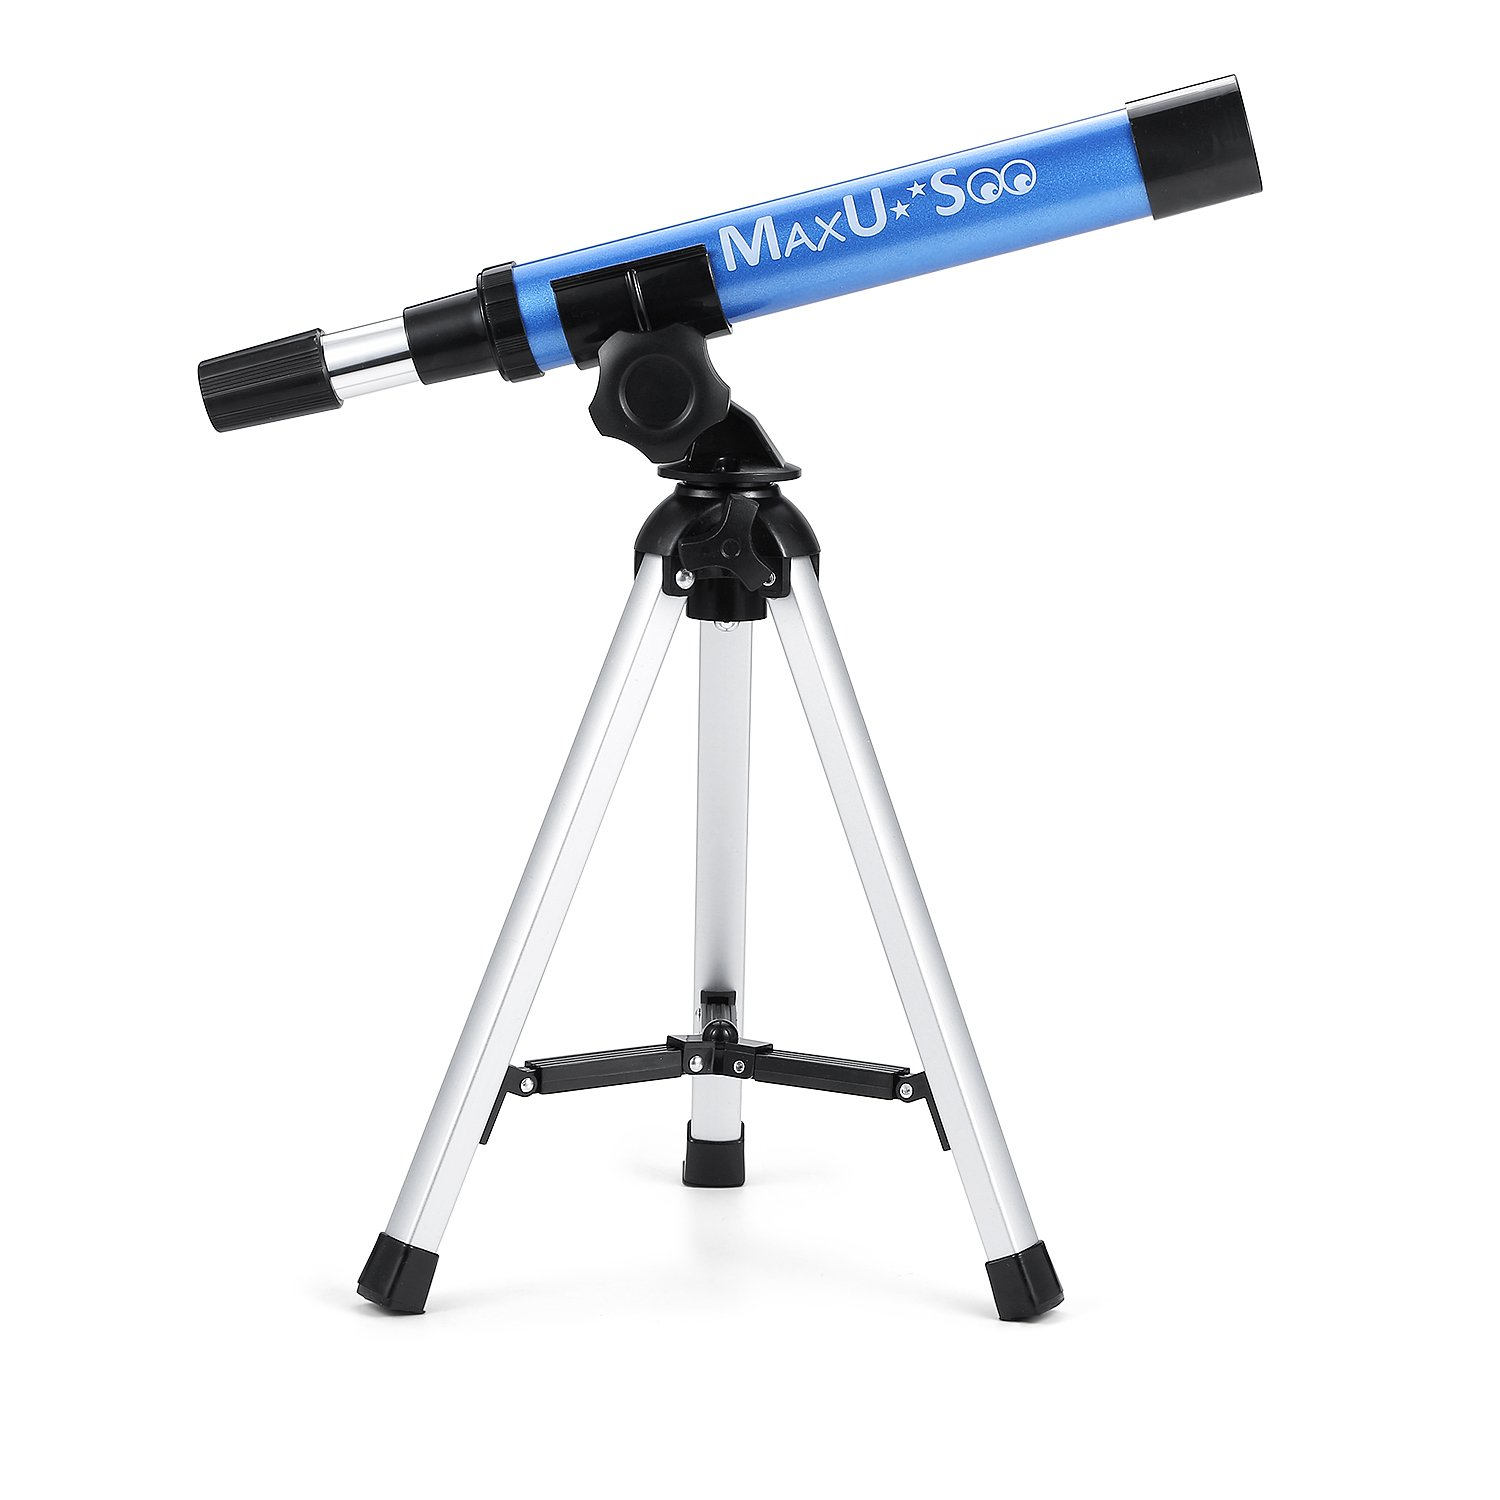 MaxUSee Refractor Telescope for Kids